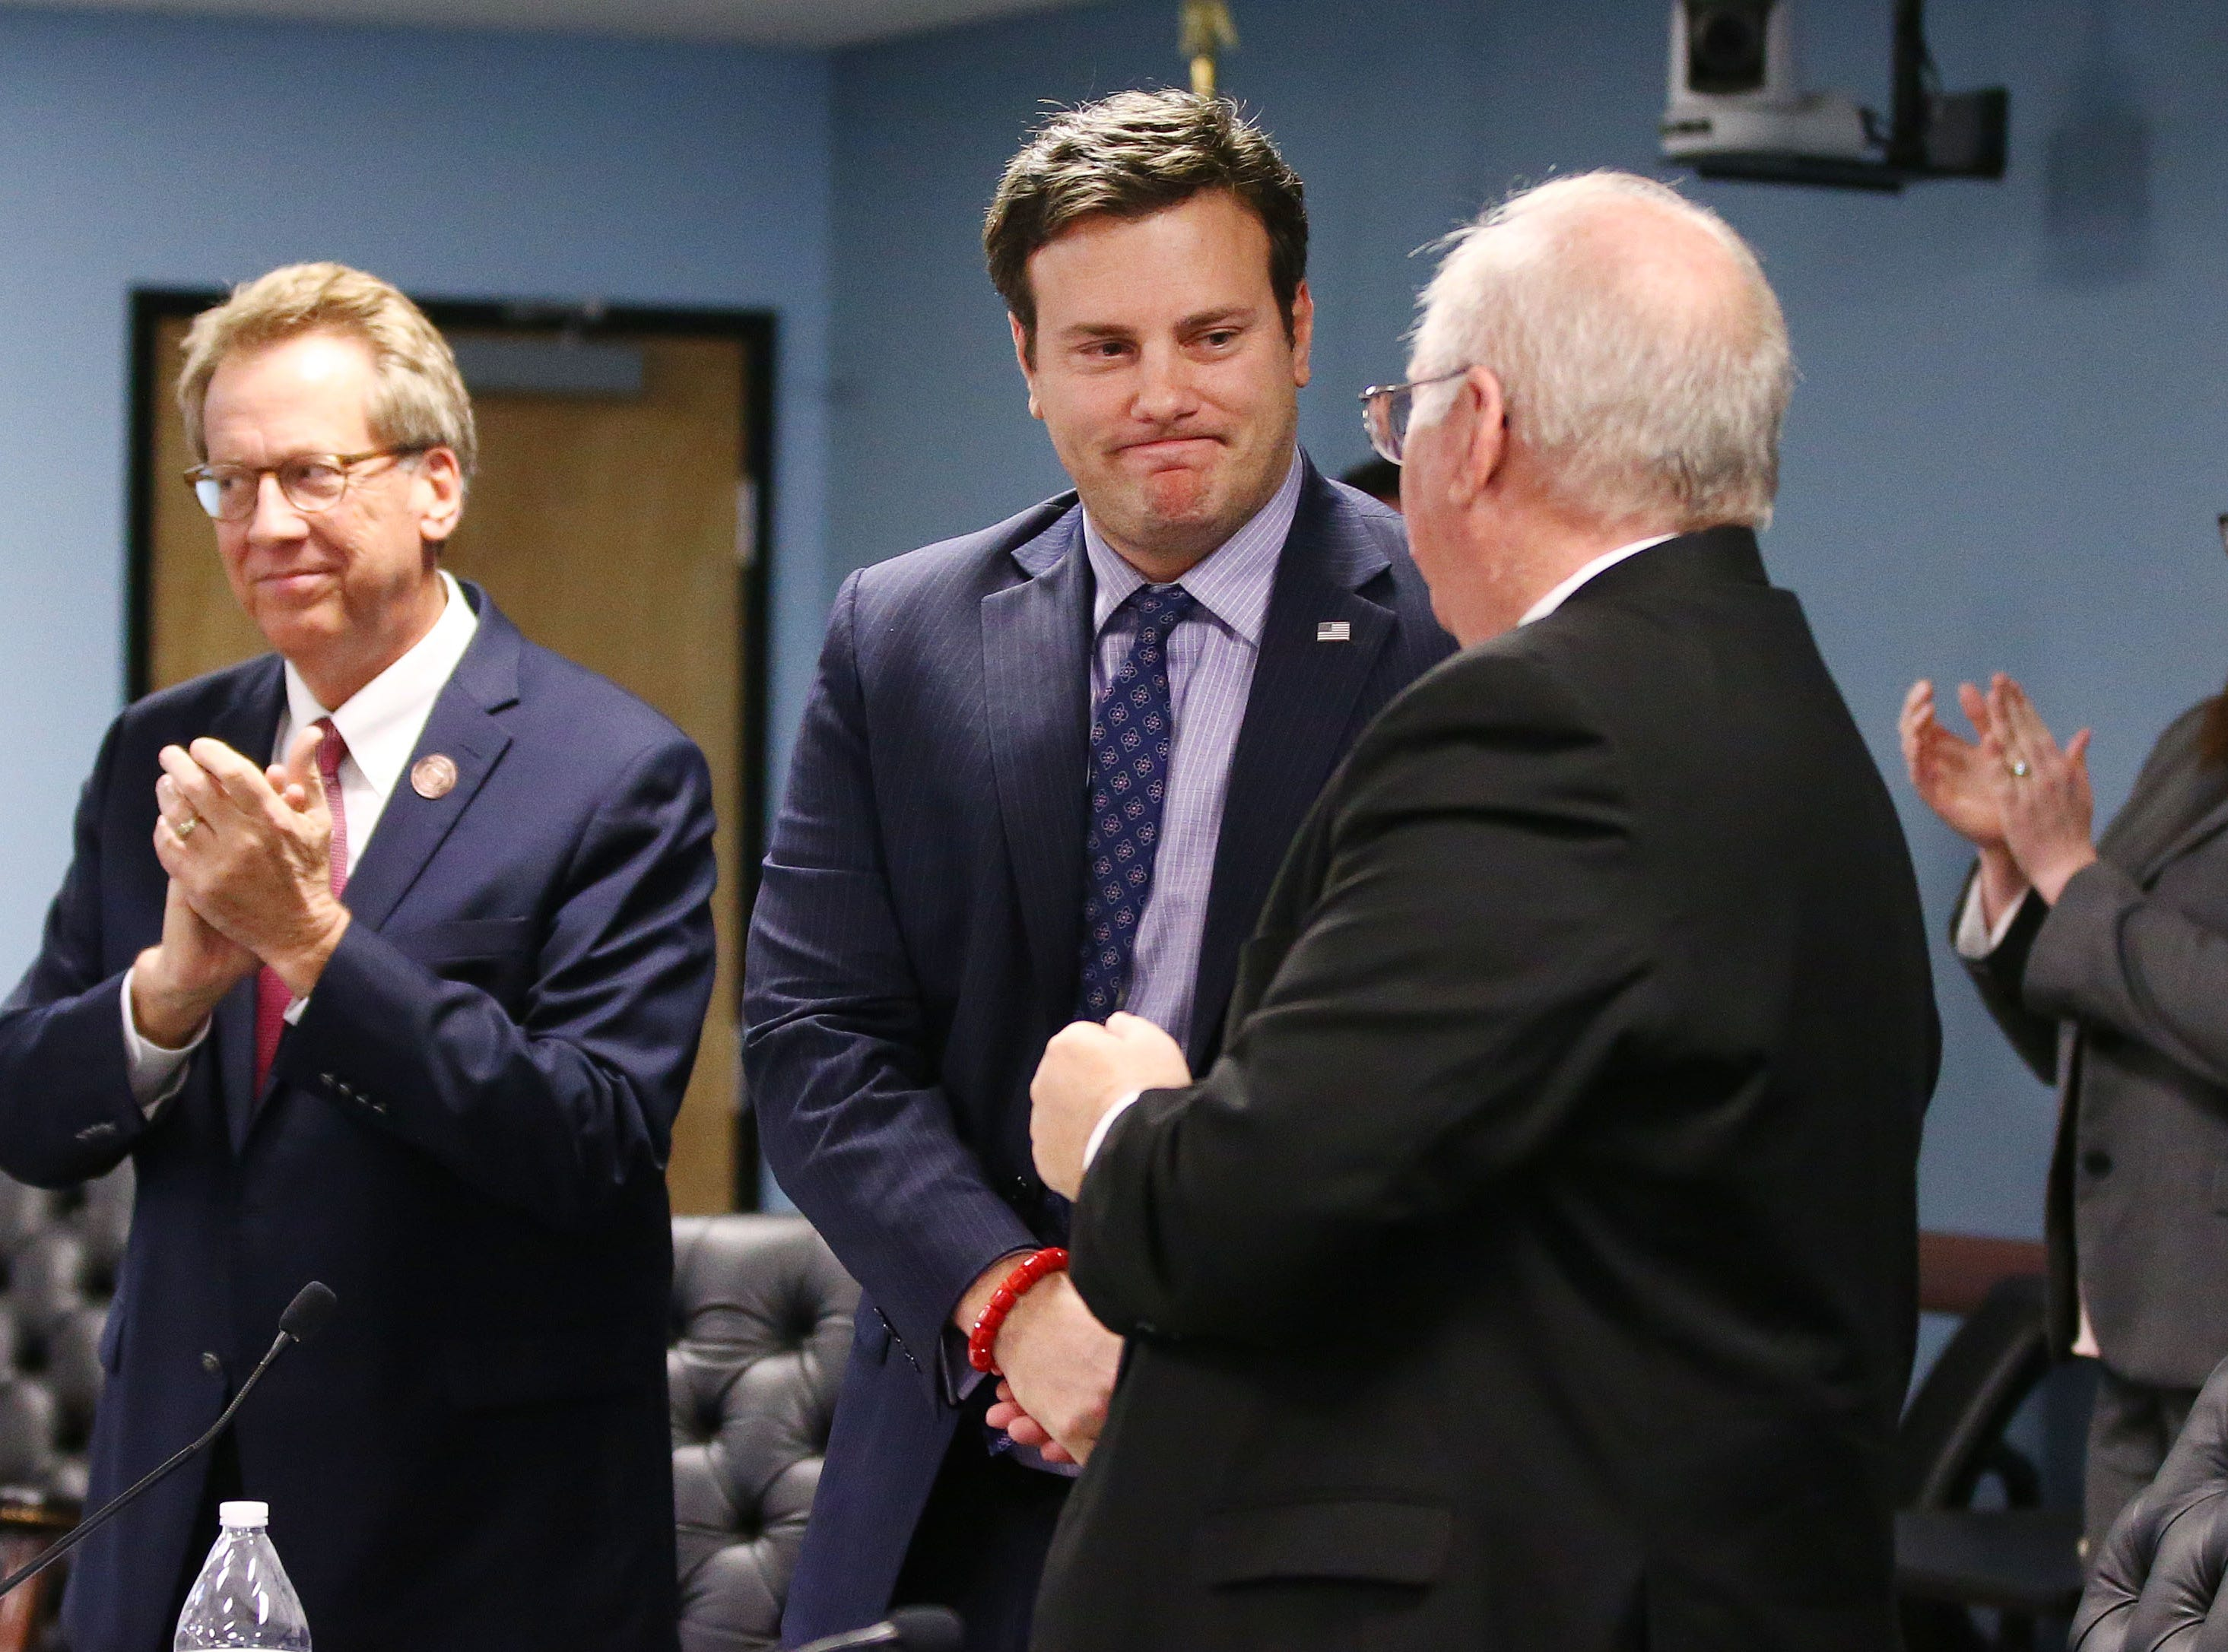 Chairman Tom Forese (center) leaves after the swearing-in ceremony after losing his re-elelction bid last year on Jan. 7 at Arizona Corporation Commission offices in Phoenix.